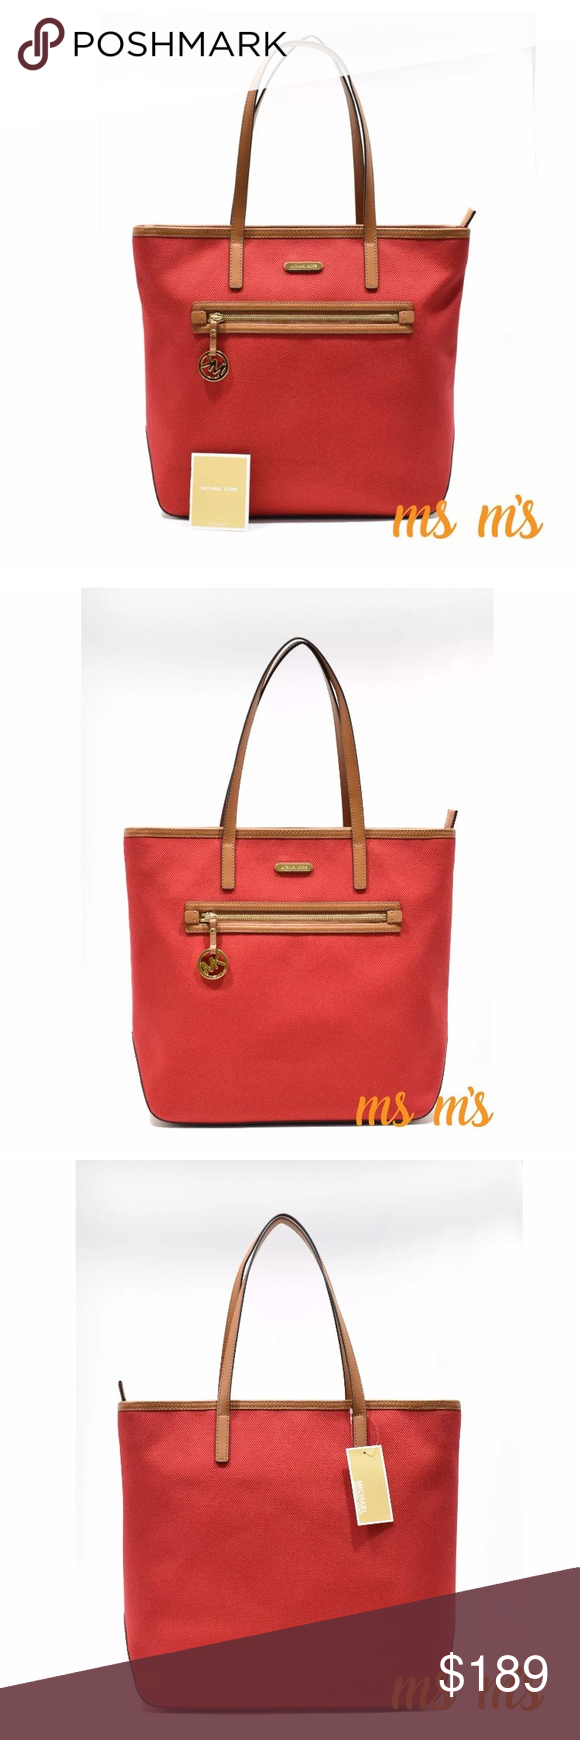 😲❗️SALE❗️FIRM PRICE NWT Michael Kors CANVAS tote Color   Red Canvas Fabric c4384a289d